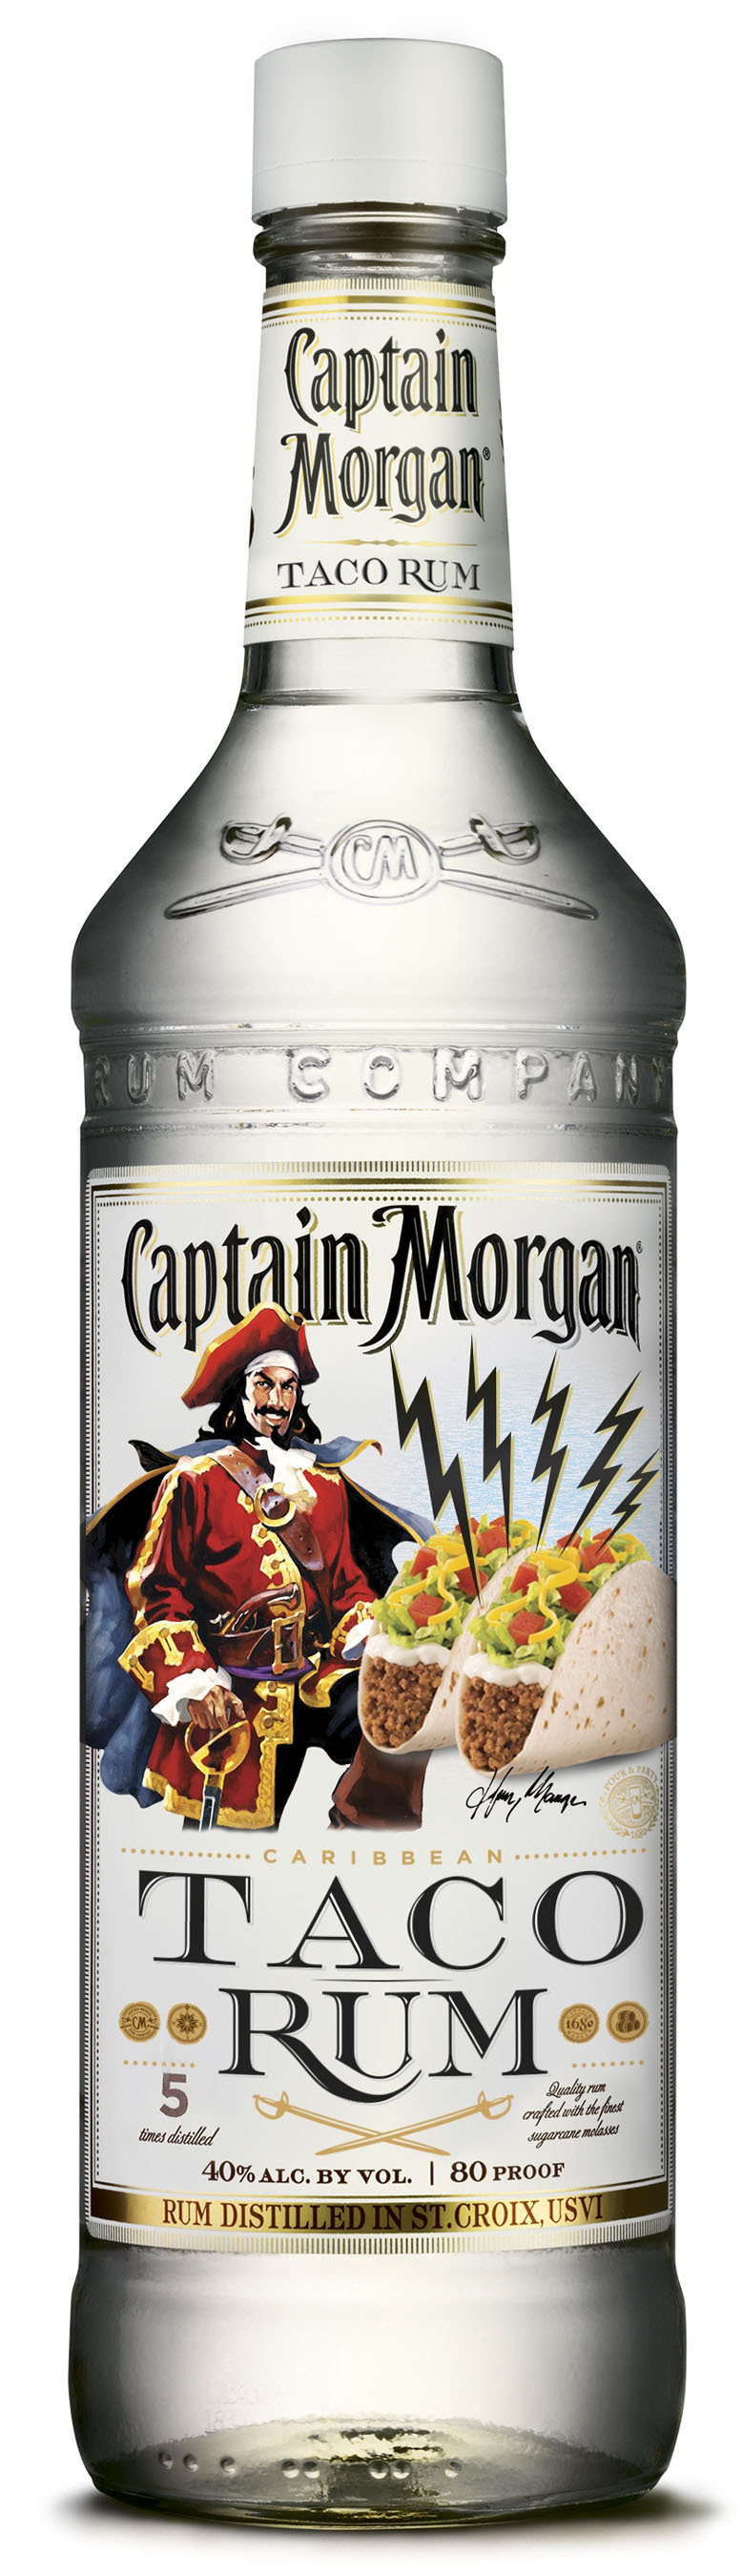 Success of New White Rum and Emerging Group Taco Occasion Leads to New Mouth Watering Captain Morgan(R) Taco Rum. (PRNewsFoto/Diageo) (PRNewsFoto/DIAGEO)